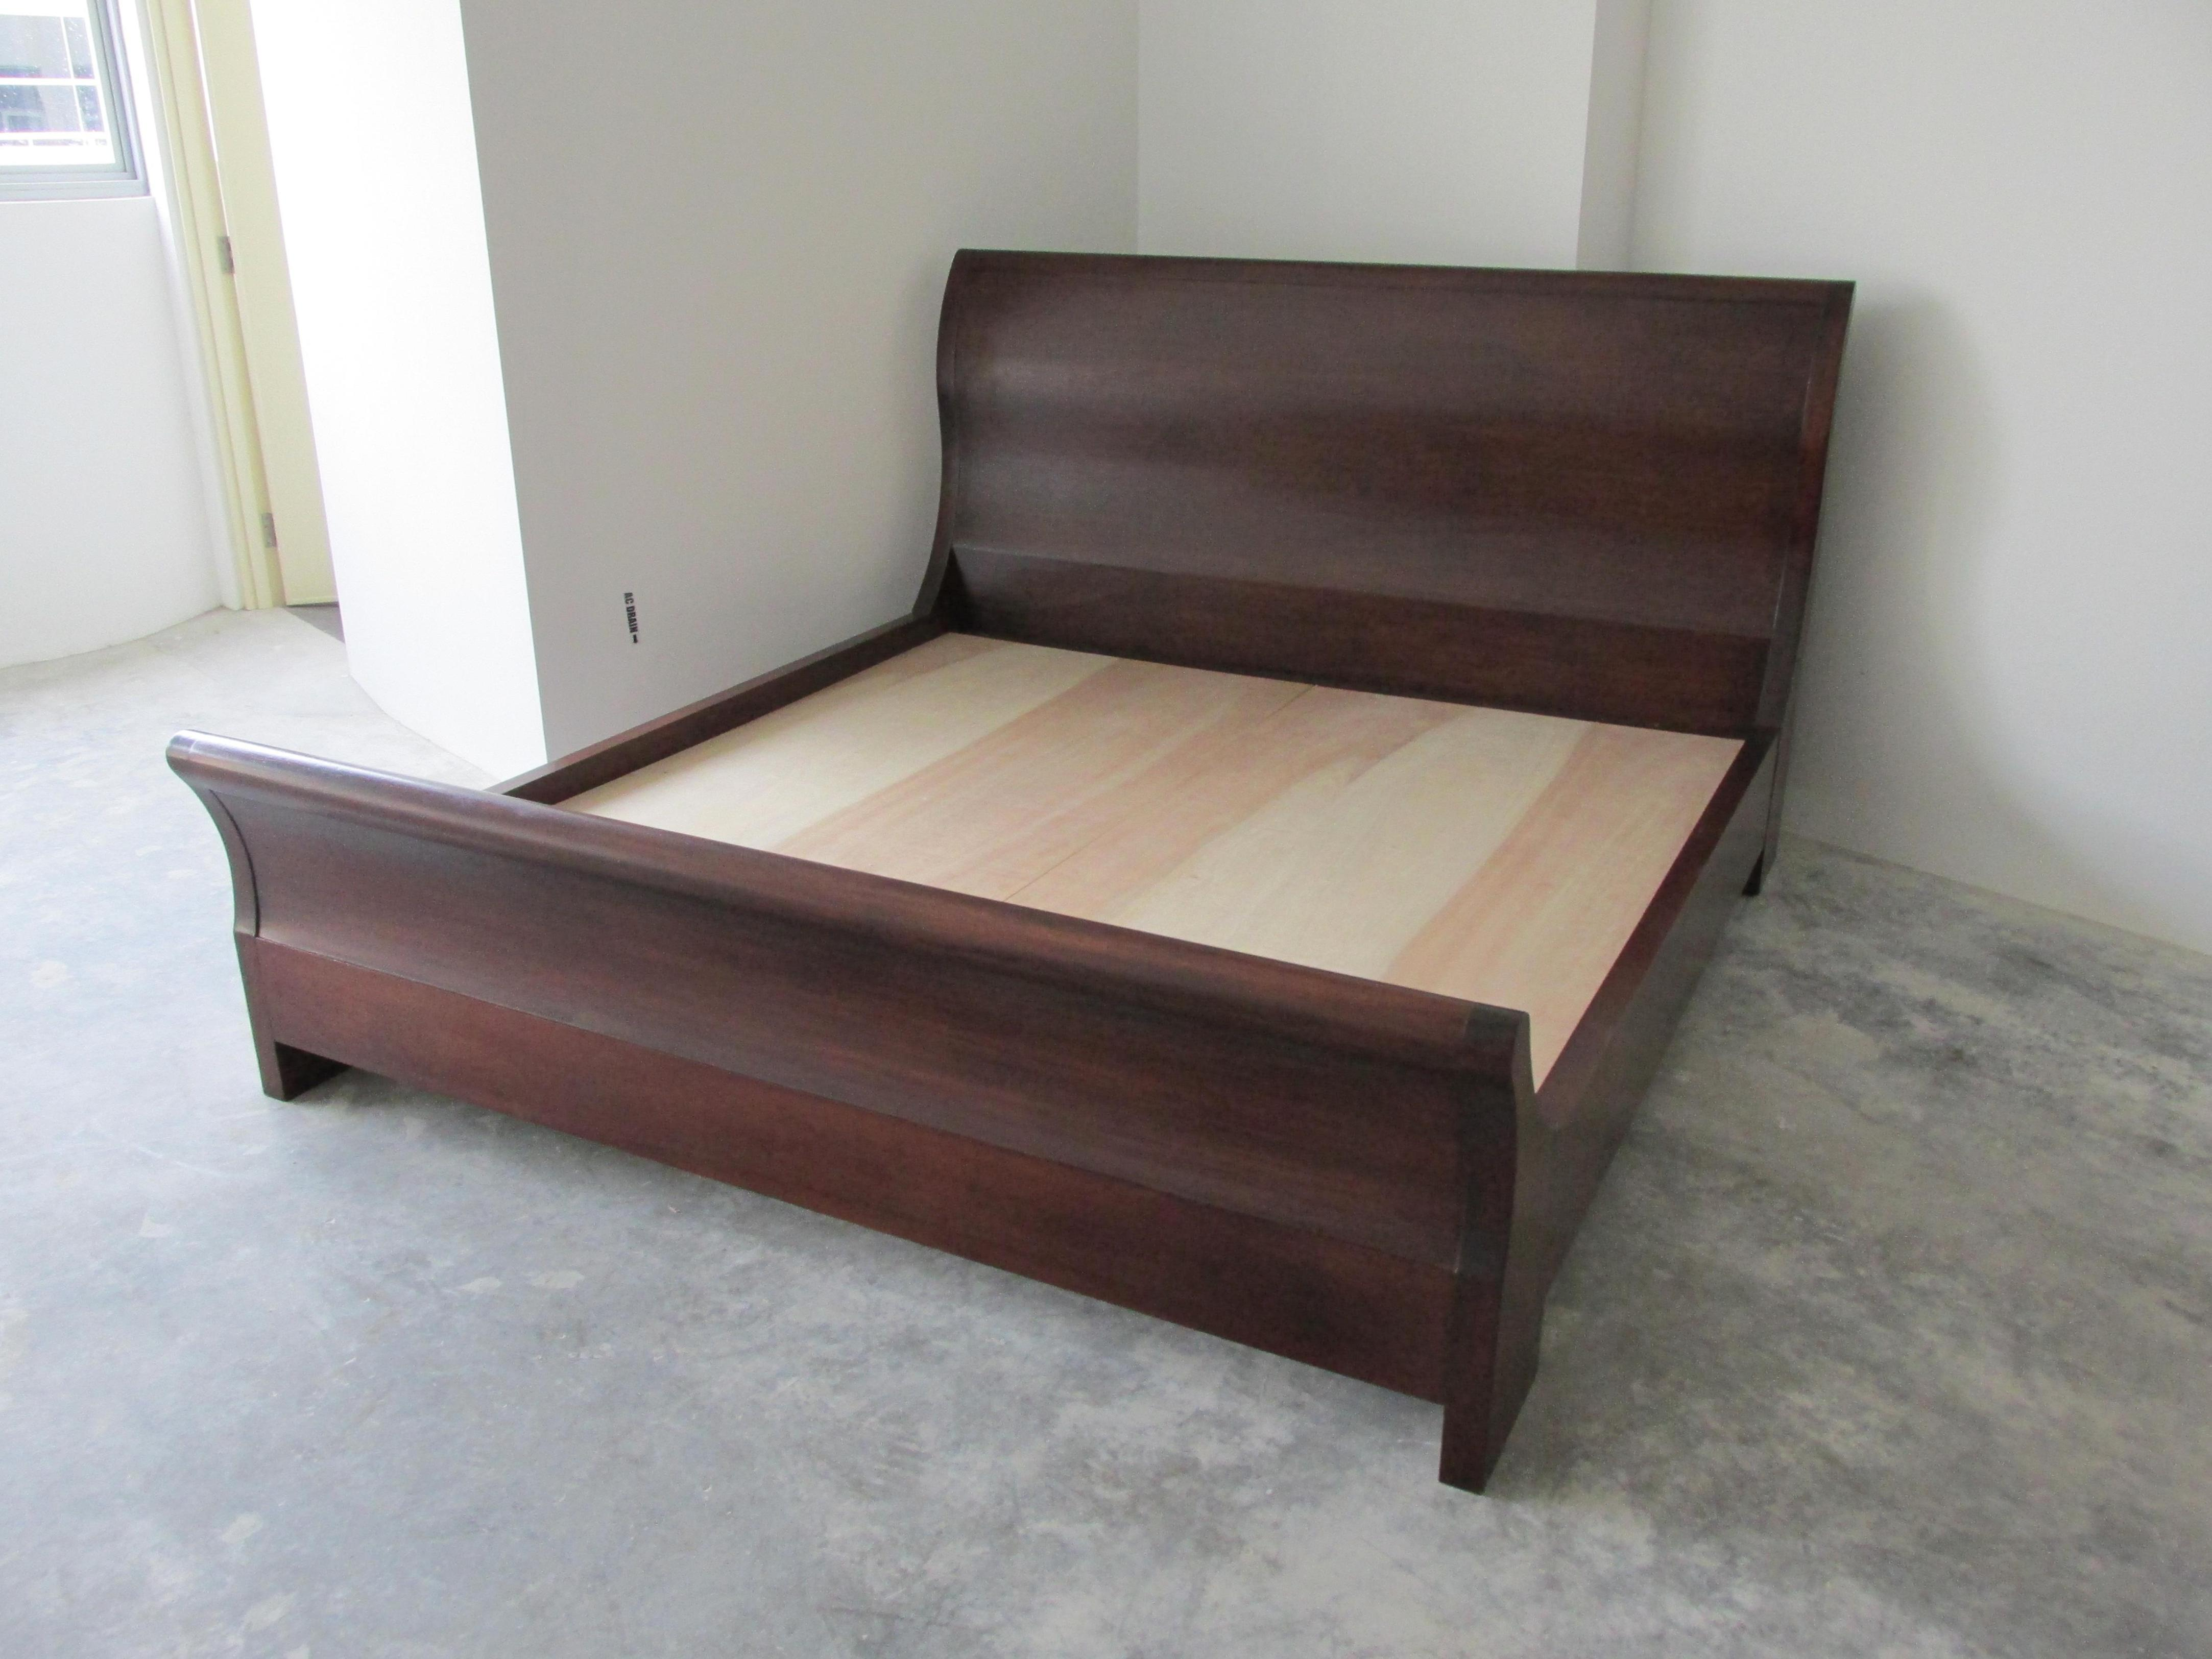 Image of: Queen Size Sleigh Bed Frame